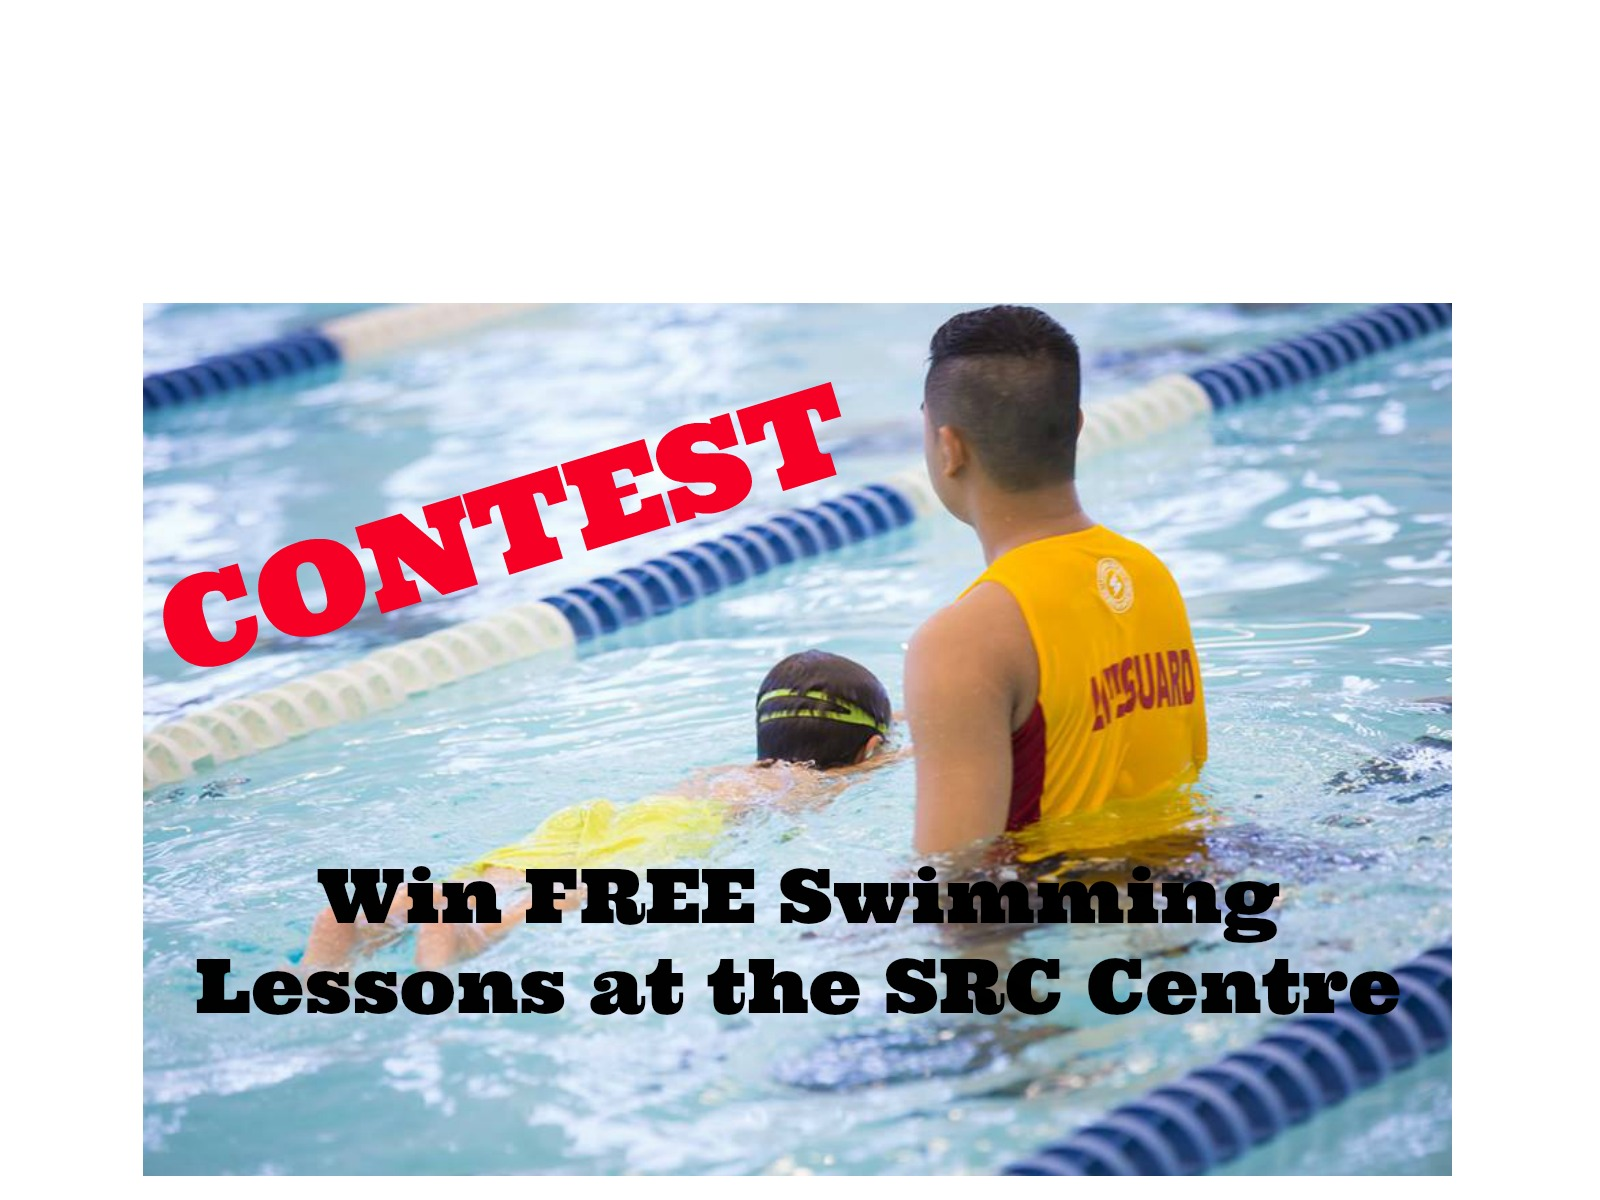 CONTEST: Win FREE Swimming Lessons at the SRC